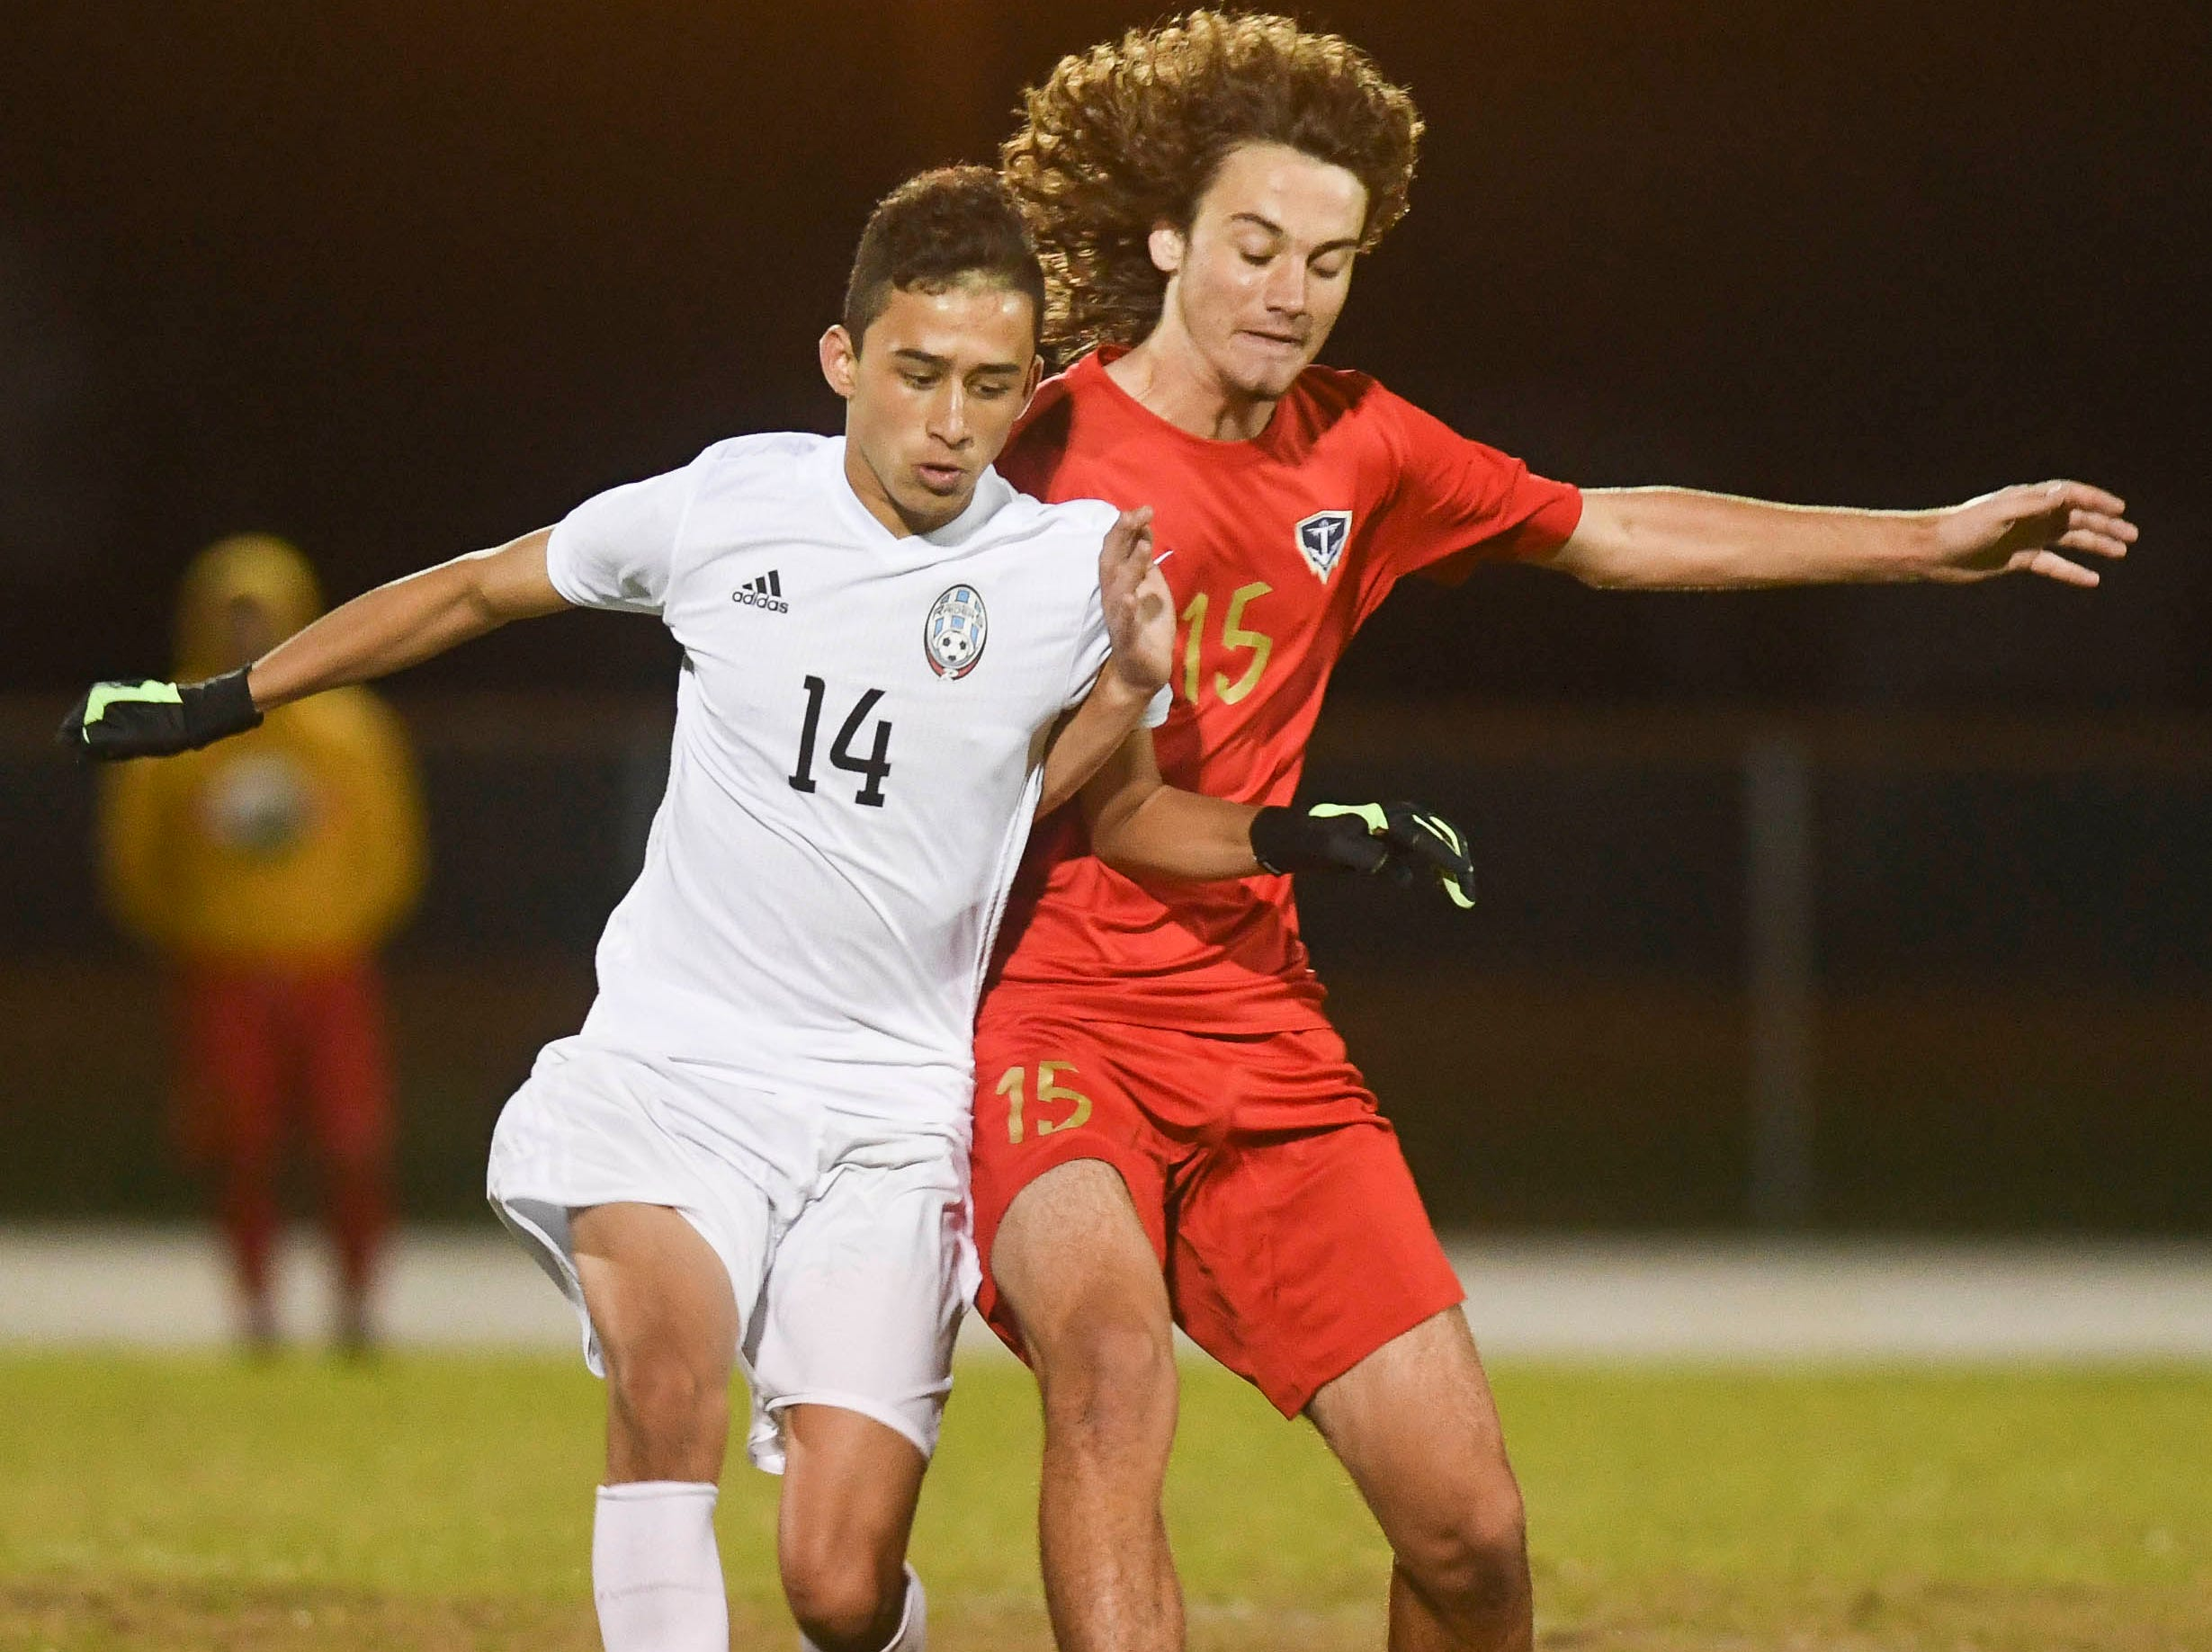 Luis Esteban Son of Rockledge fights for control of the ball with Caleb Webb of Eau Gallie during Thursday's game in Melbourne.